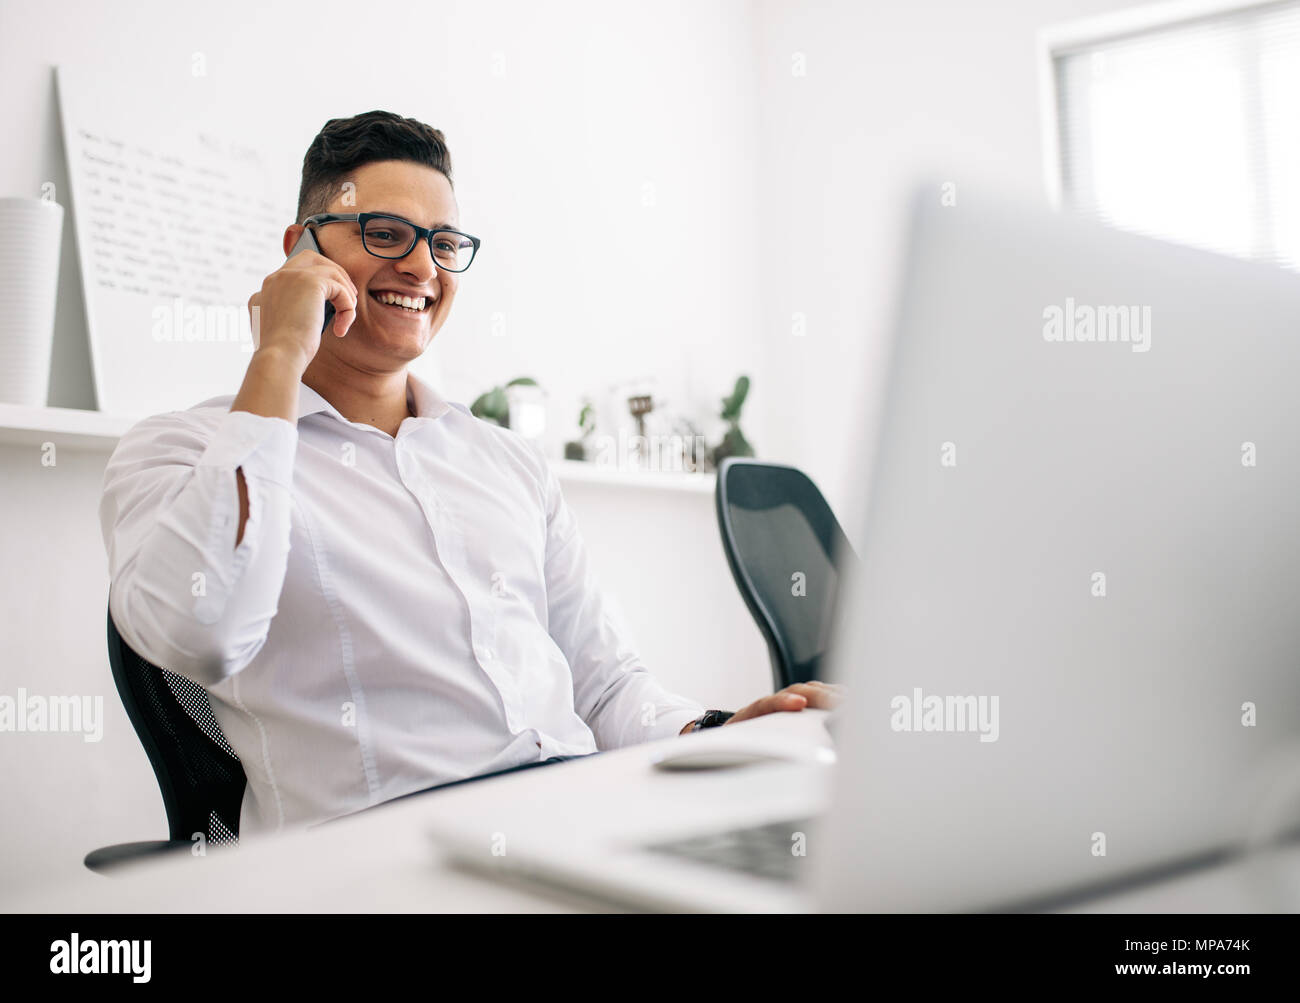 Smiling software developer talking over mobile phone sitting at his office desk with a laptop in front. Man wearing spectacles working on laptop compu - Stock Image